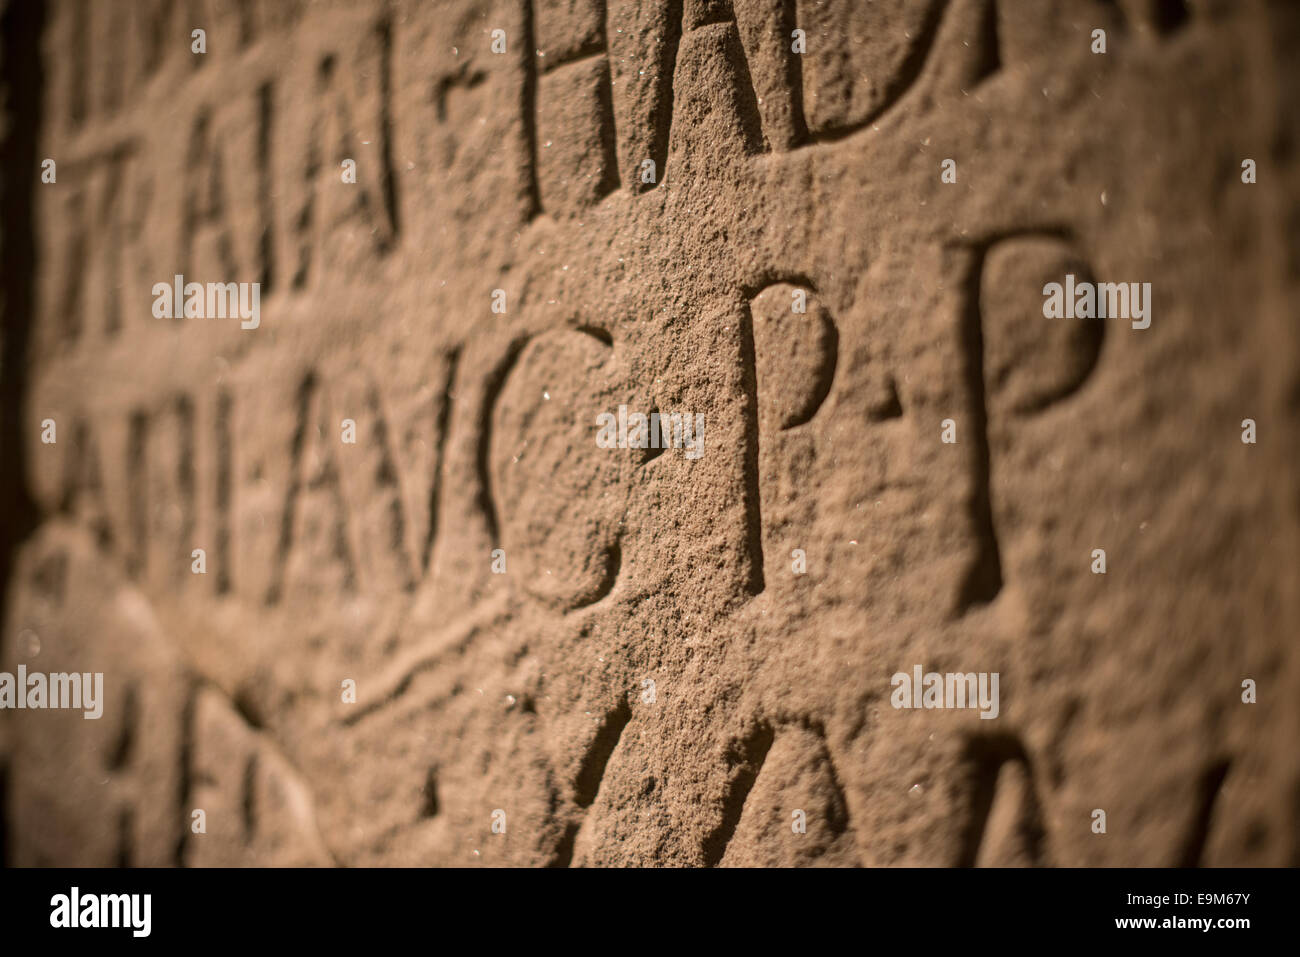 LONDON, UK - A building inscription etched into stone found at the fort of Moresby, Cumbria, on display at the British - Stock Image